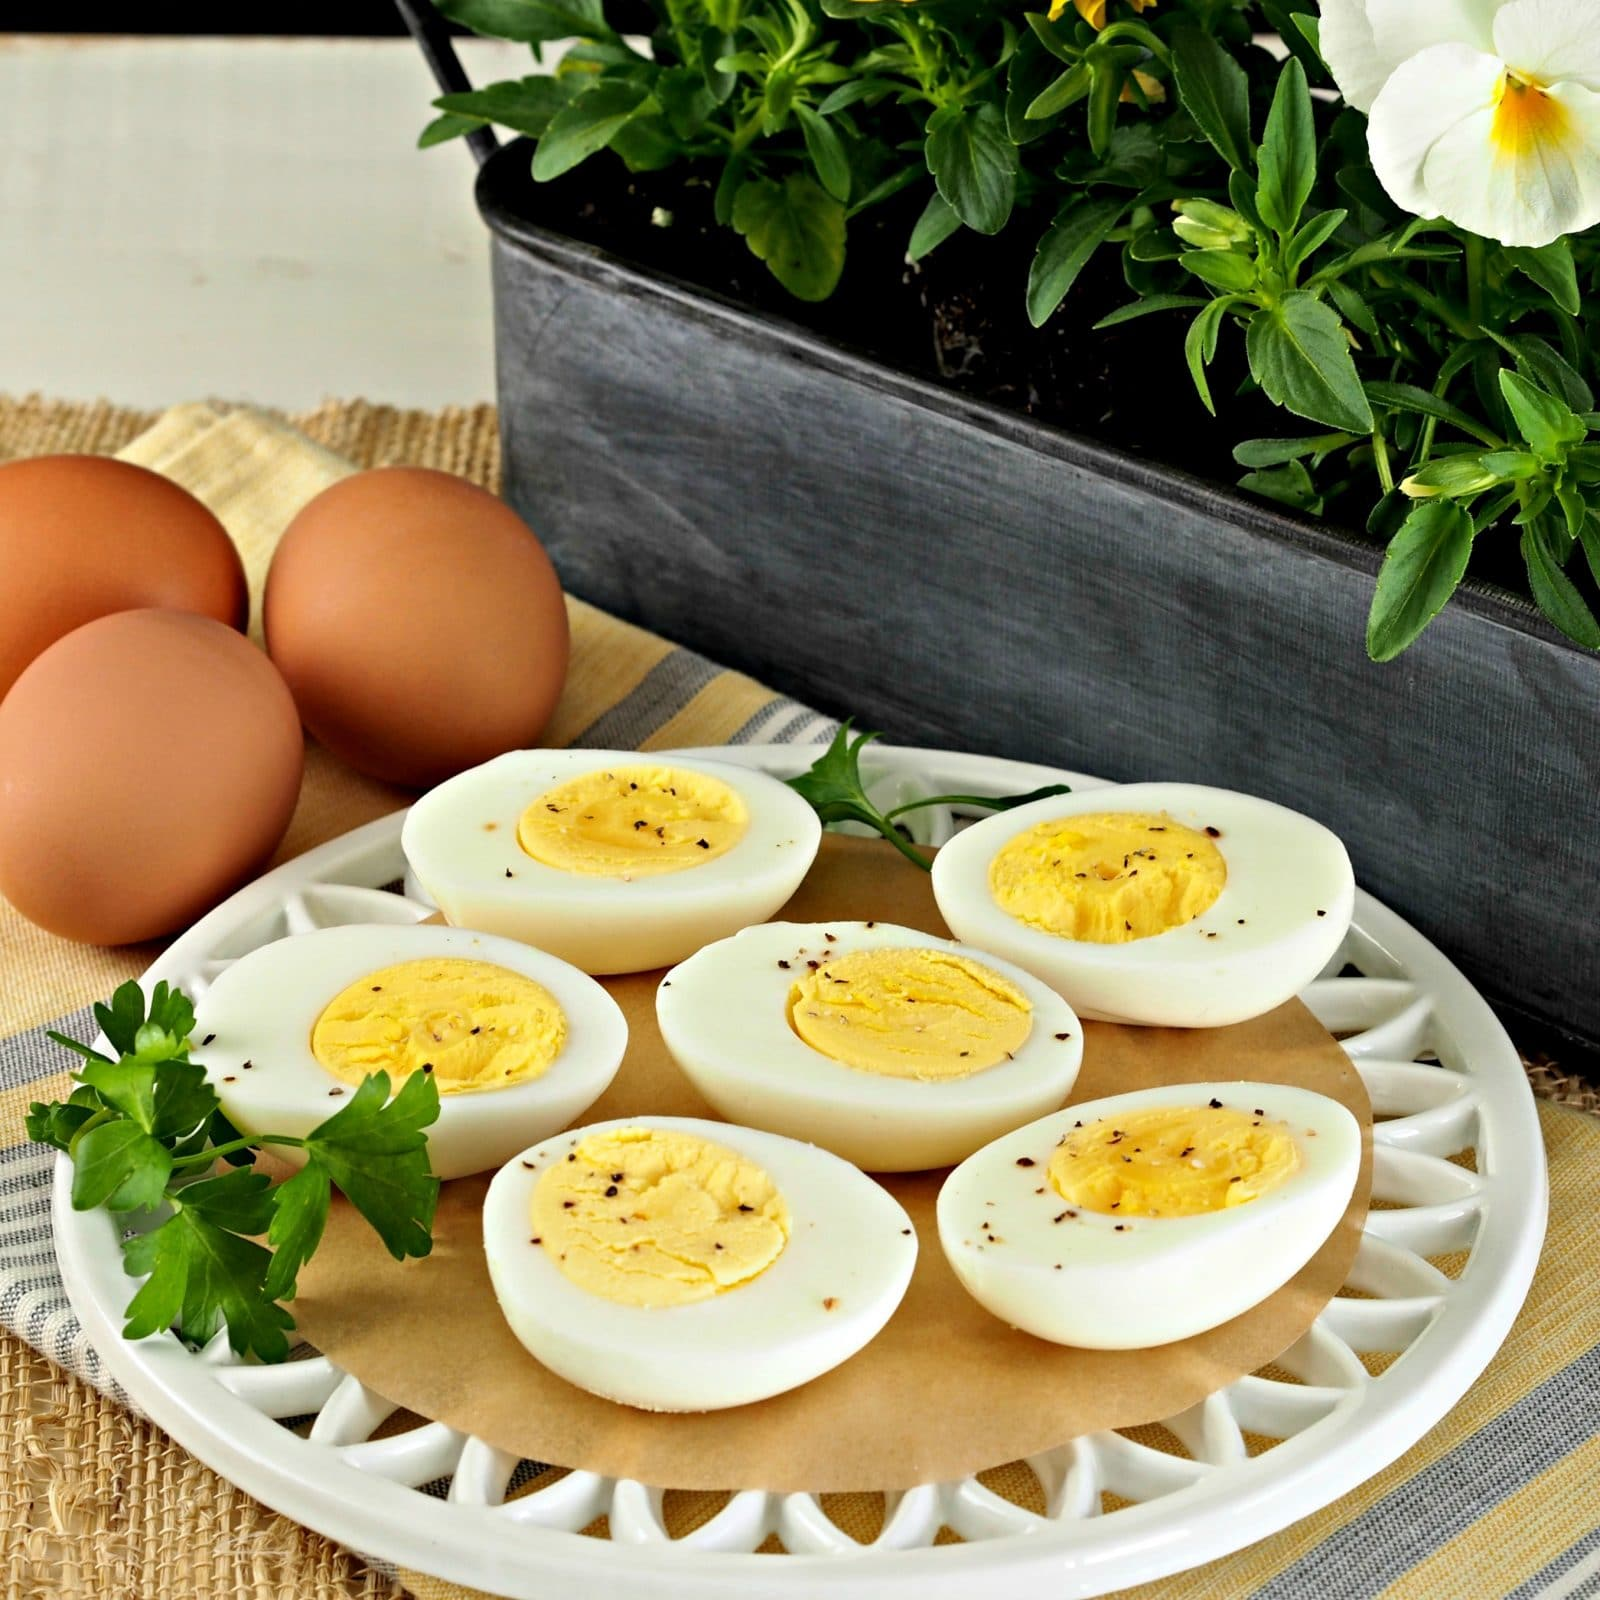 Hard-Cooked Steamed Eggs. Steaming eggs instead of boiling them creates eggs with yellow yolks, perfect whites & eggs easier to peel. Egg perfection. Simply Sated